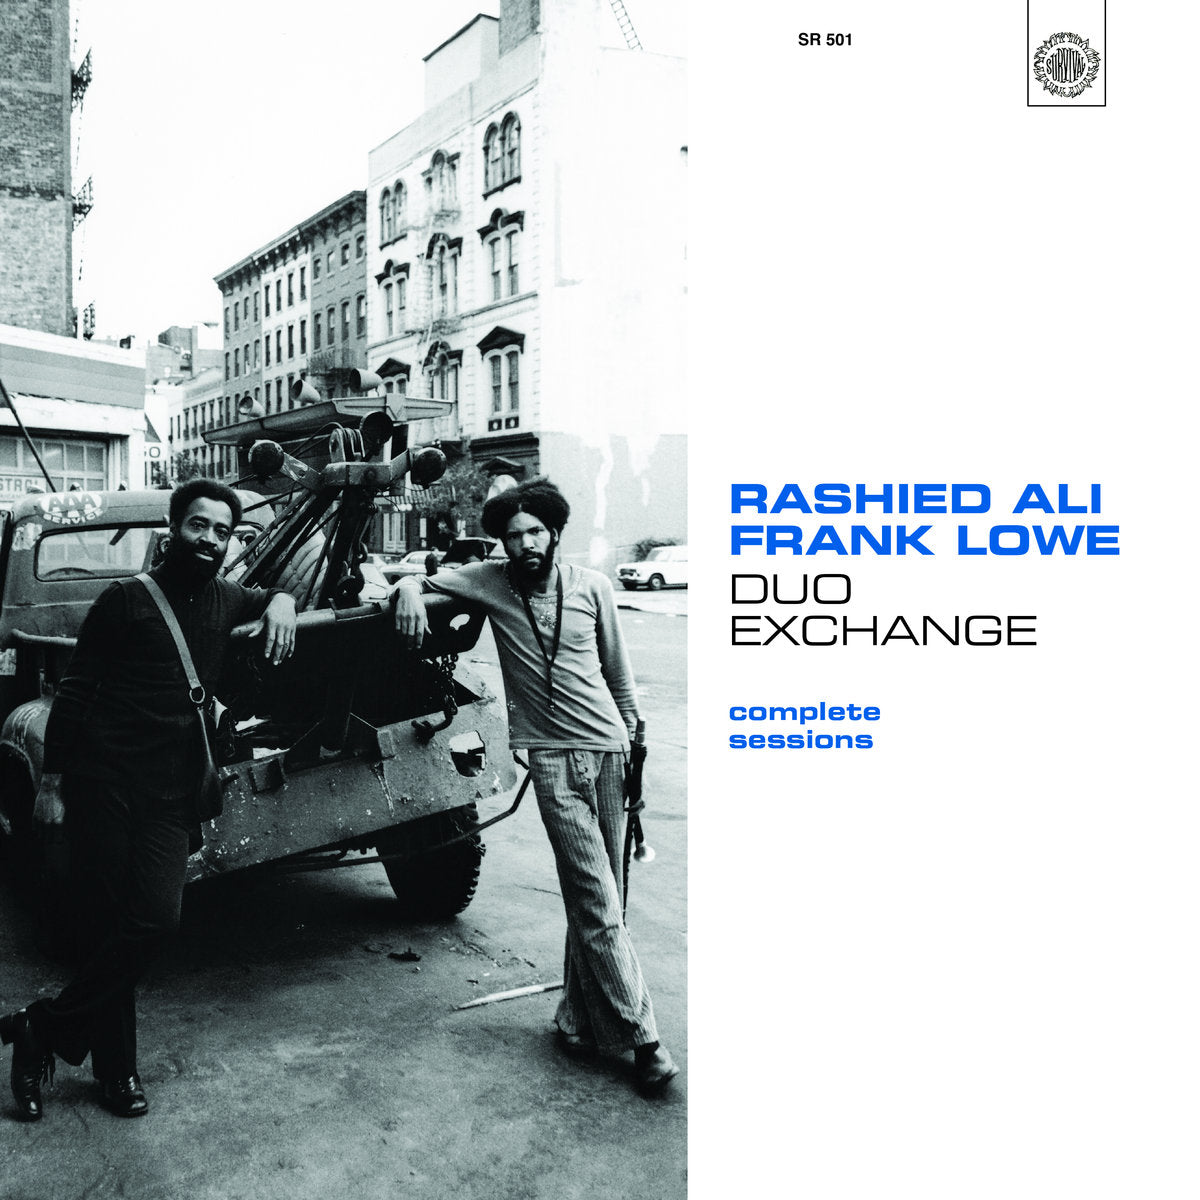 Rashied Ali & Frank Lowe - Duo Exchange: Complete Sessions 2xLP